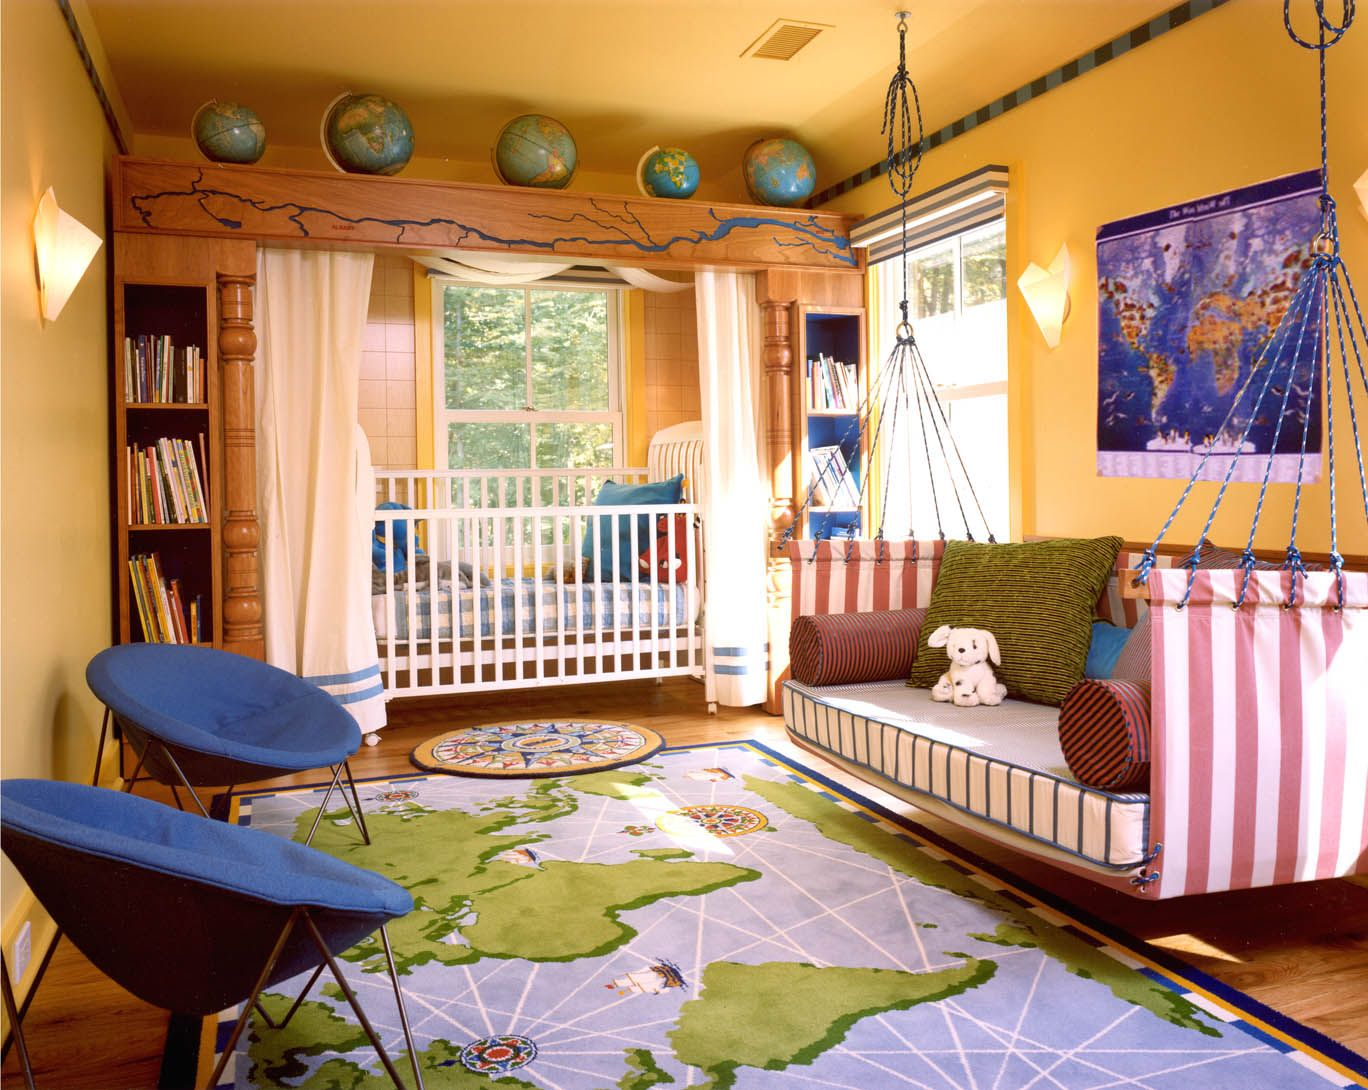 15 nice kids room decor ideas with example pics - Decorate Boys Bedroom